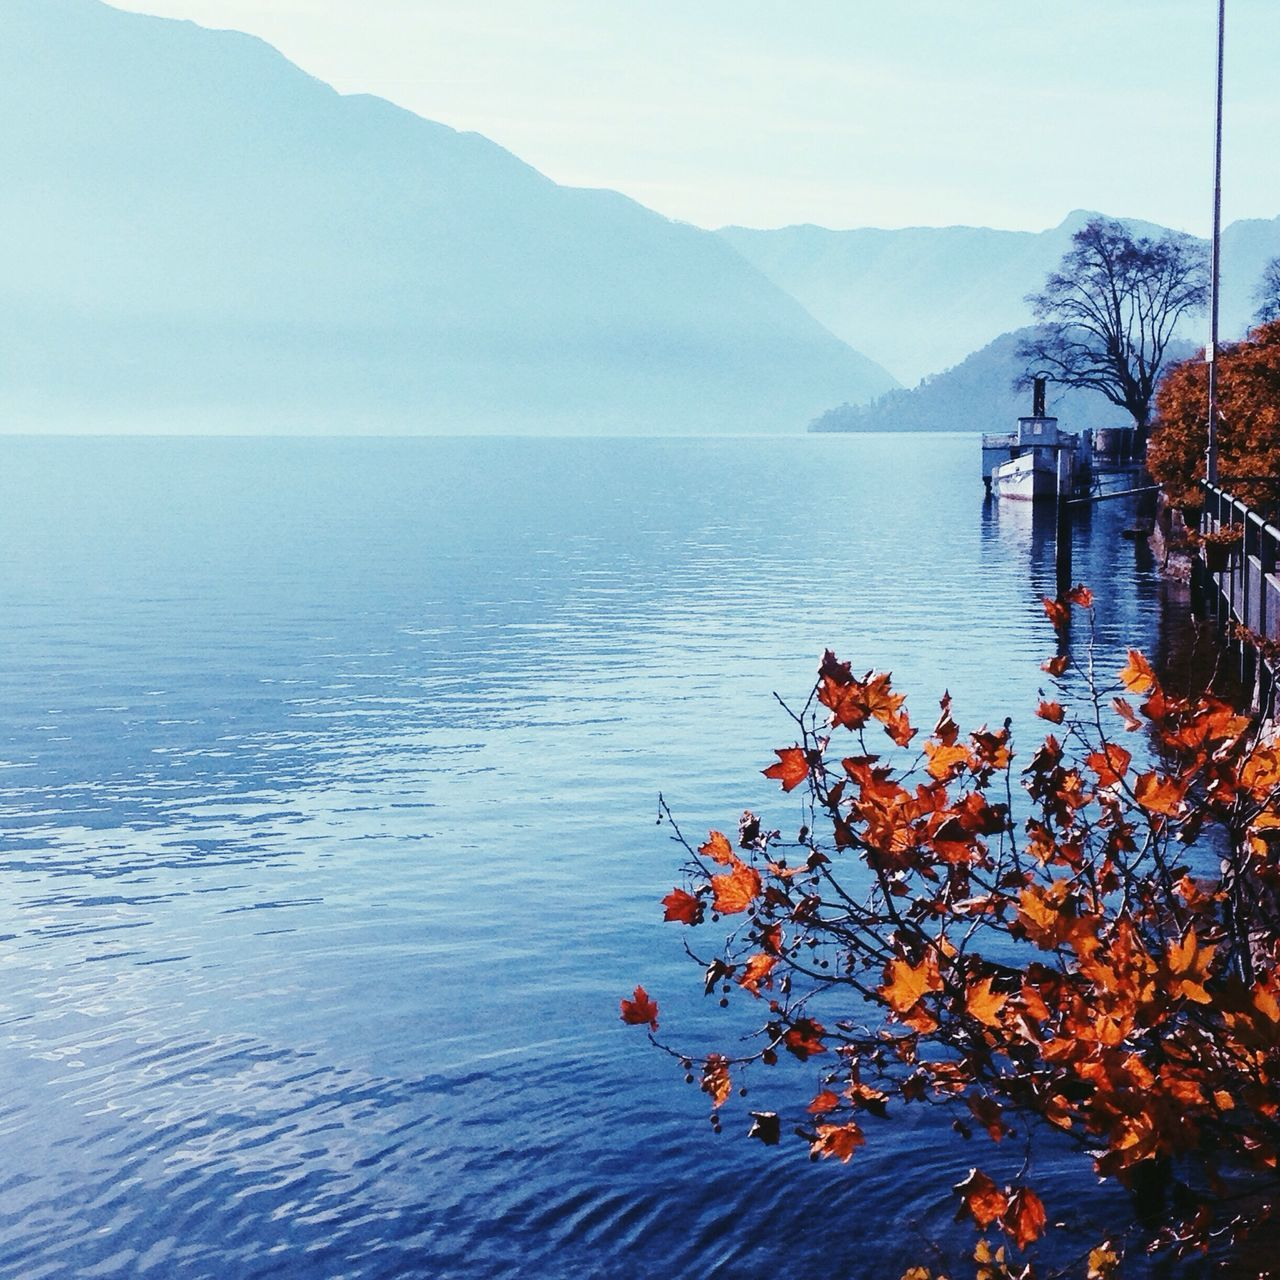 Beautiful morning walk around Como lake 🚣 Peaceful Lake Como Taveler Italy Foggy Morning Morning Sky Lakeside Ship Boat Morningwalk Motivational Inspiration